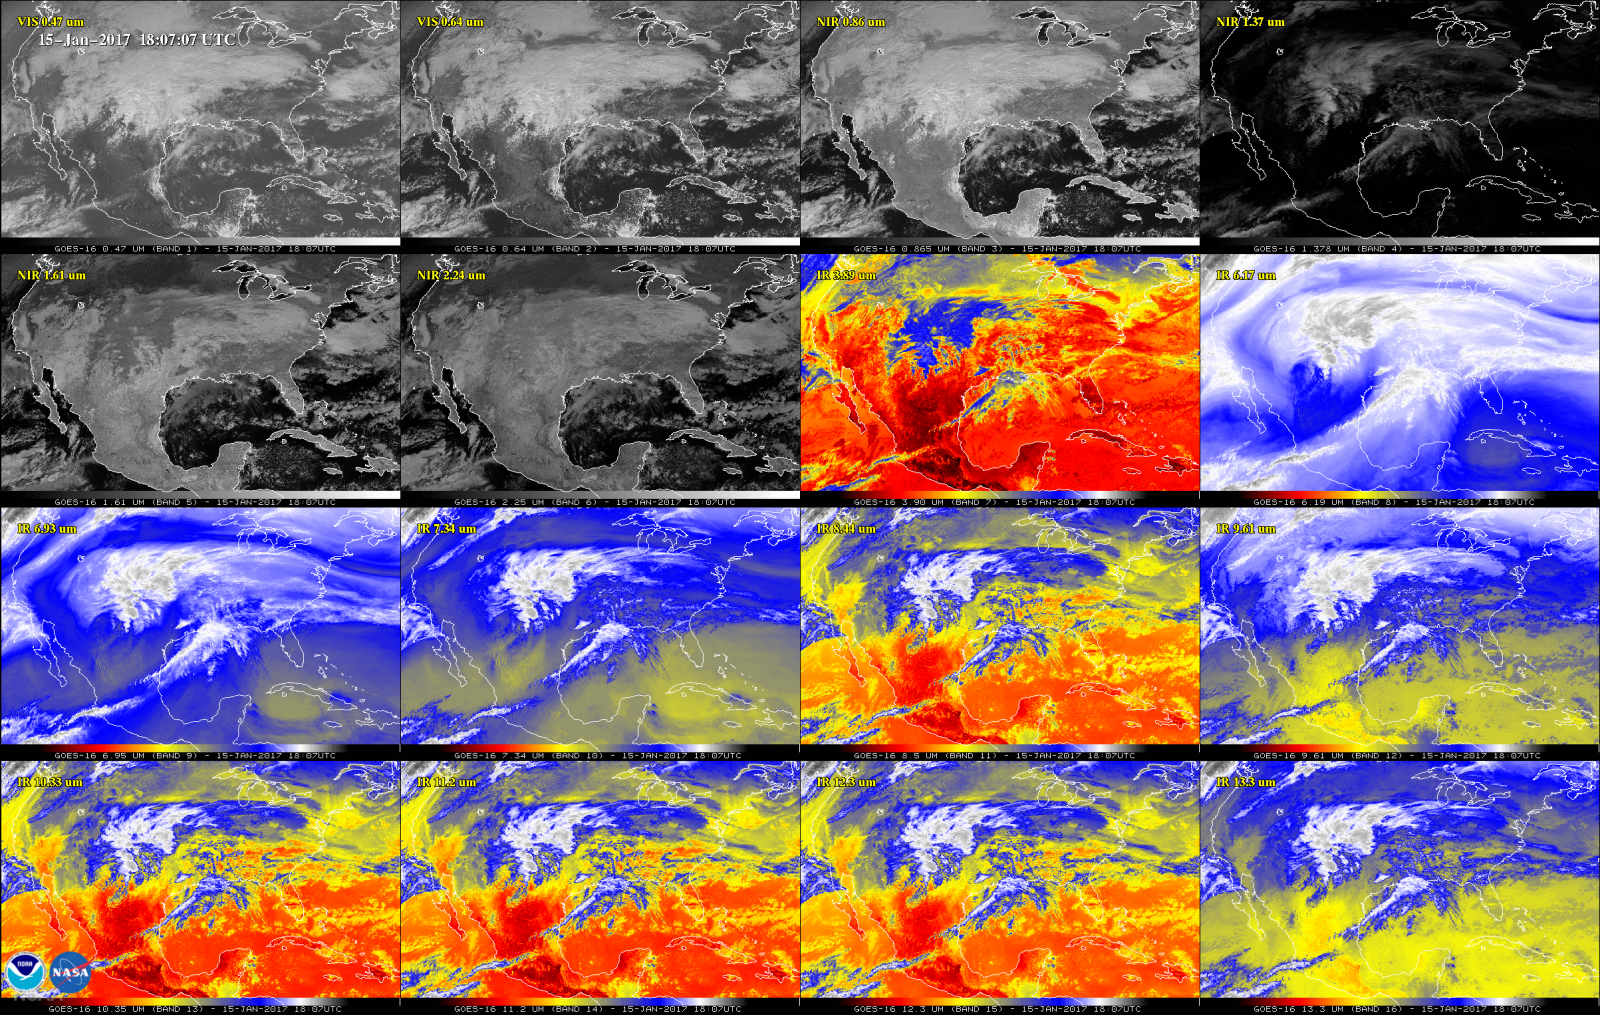 16-panel image of North America by GOES-16